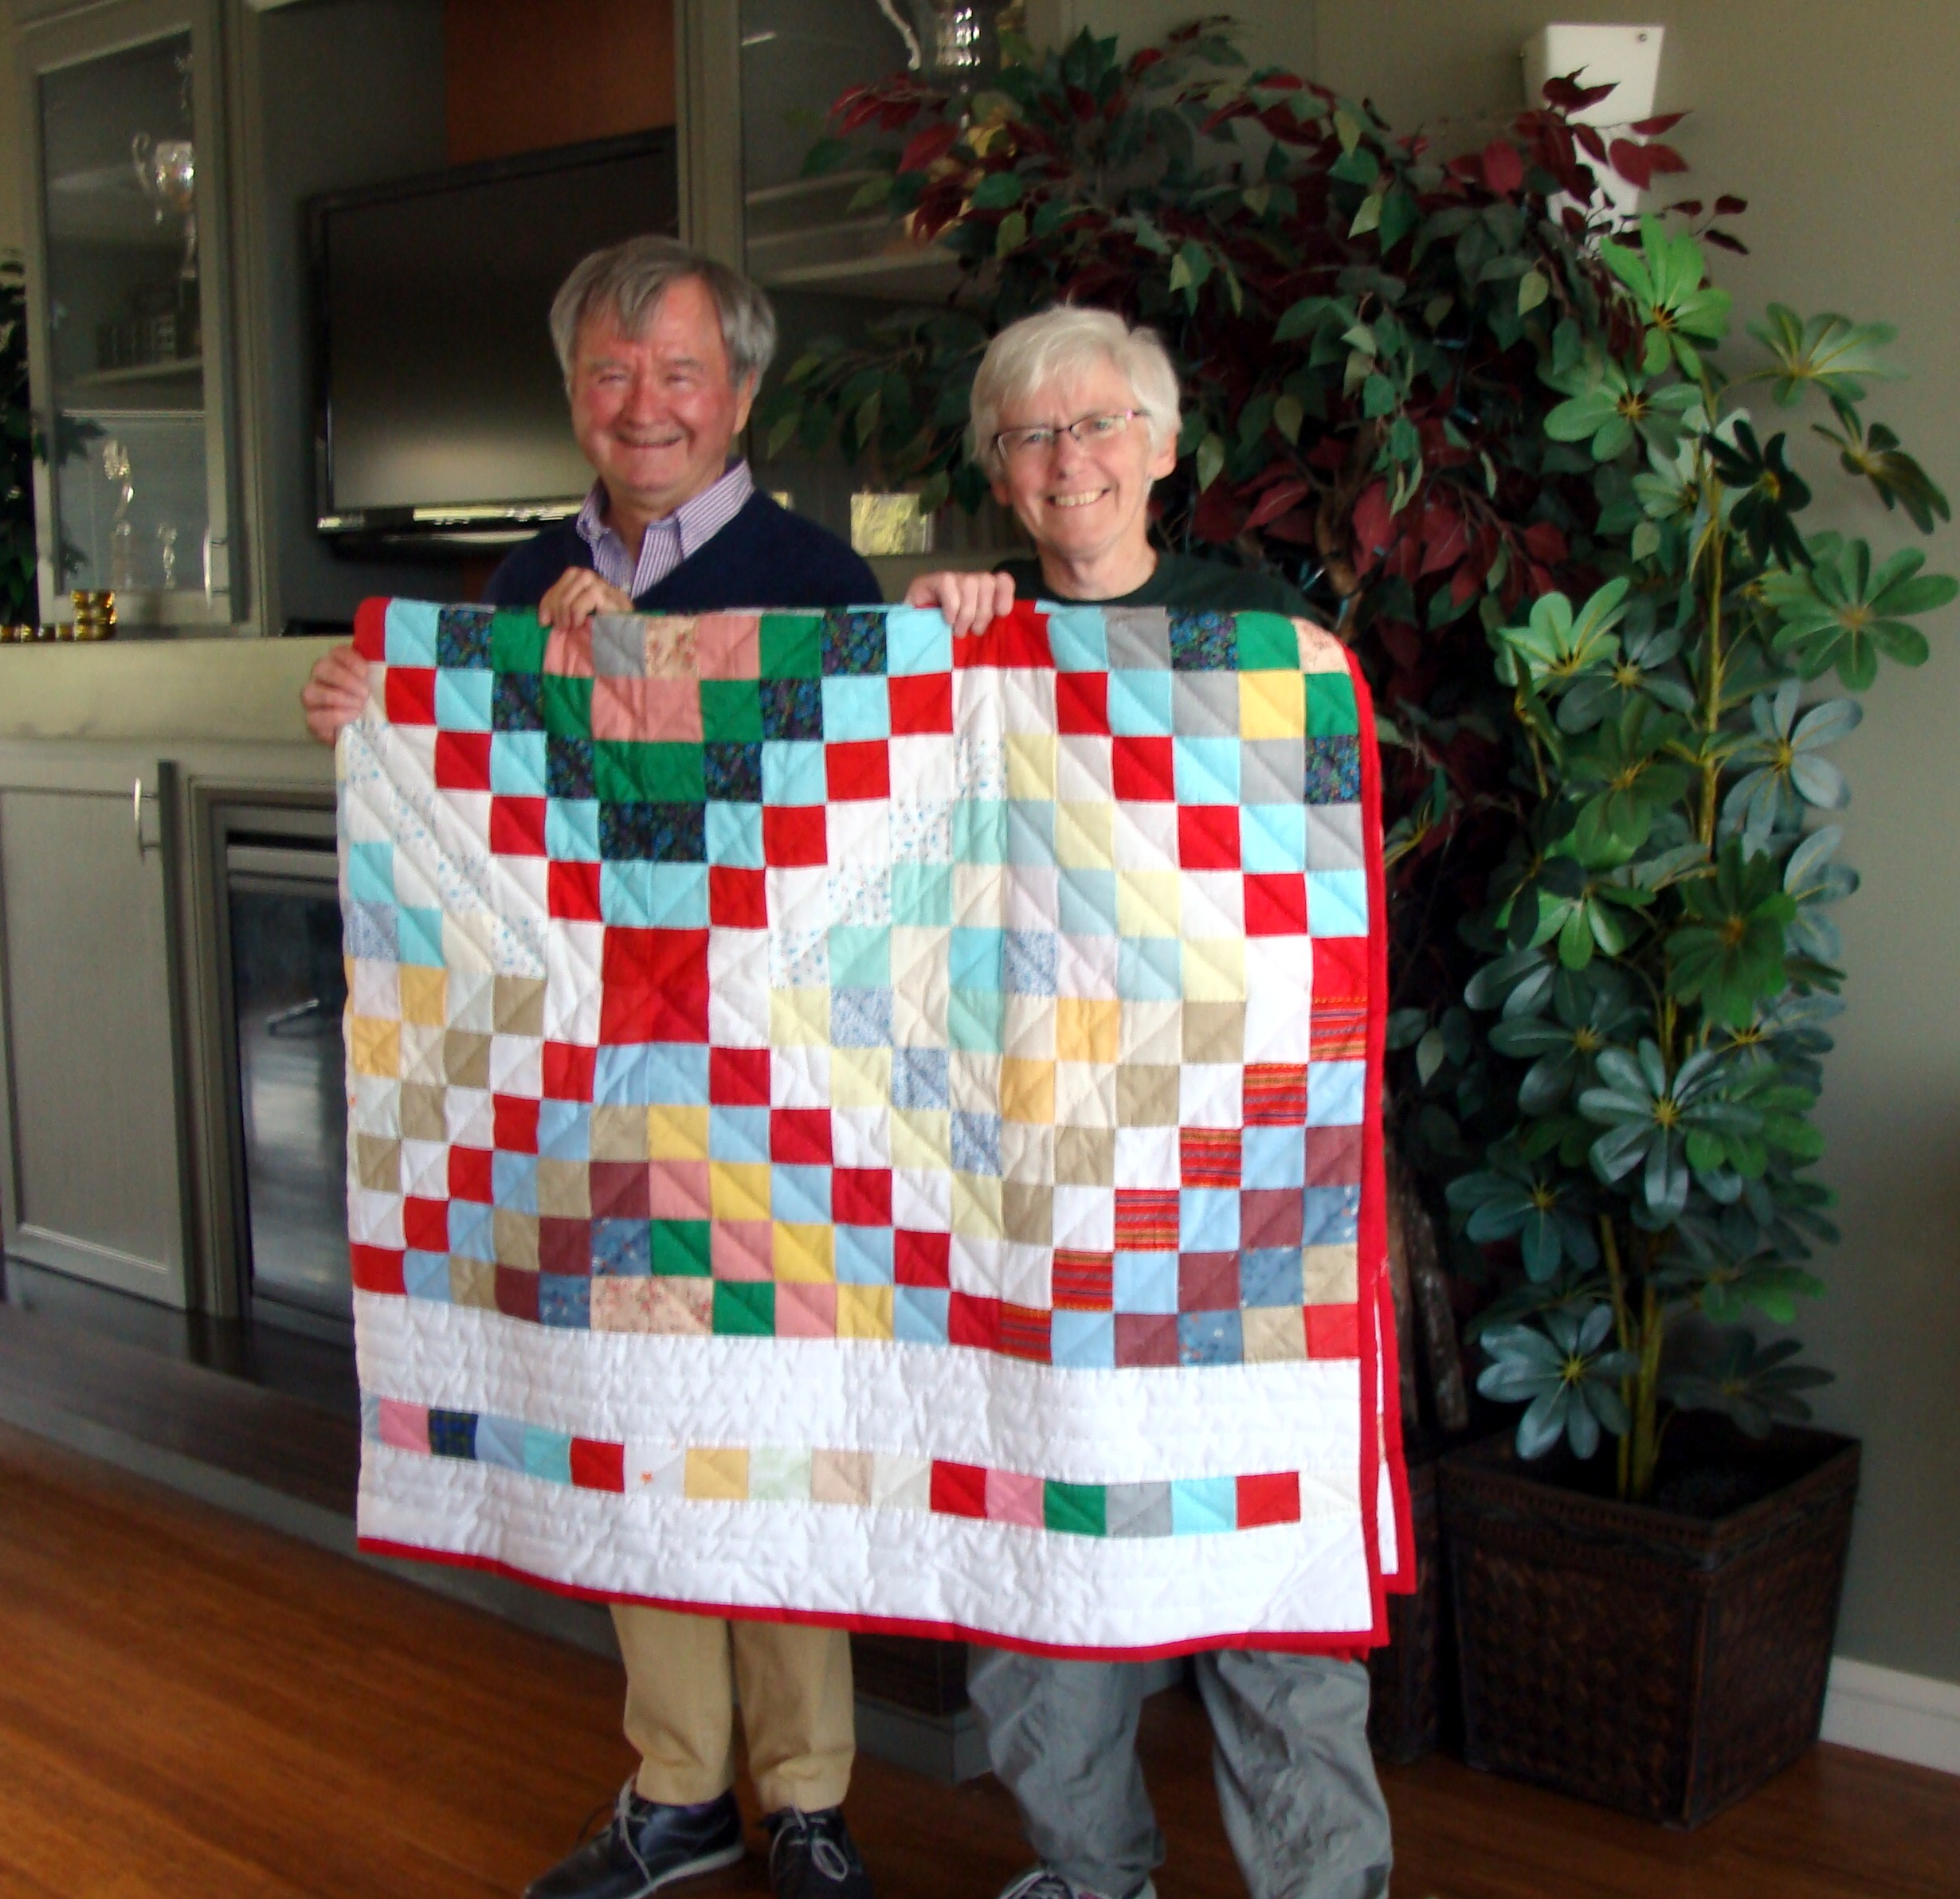 Our own Stephen Leahey was the winner of this year's beautiful quilt done by Miriam Thompson. This (and to a much smaller extent the hot dog sale) was the key to this year's April fundraising  BIG THANKS TO SCOTIABANK FOR MATCHING IT.